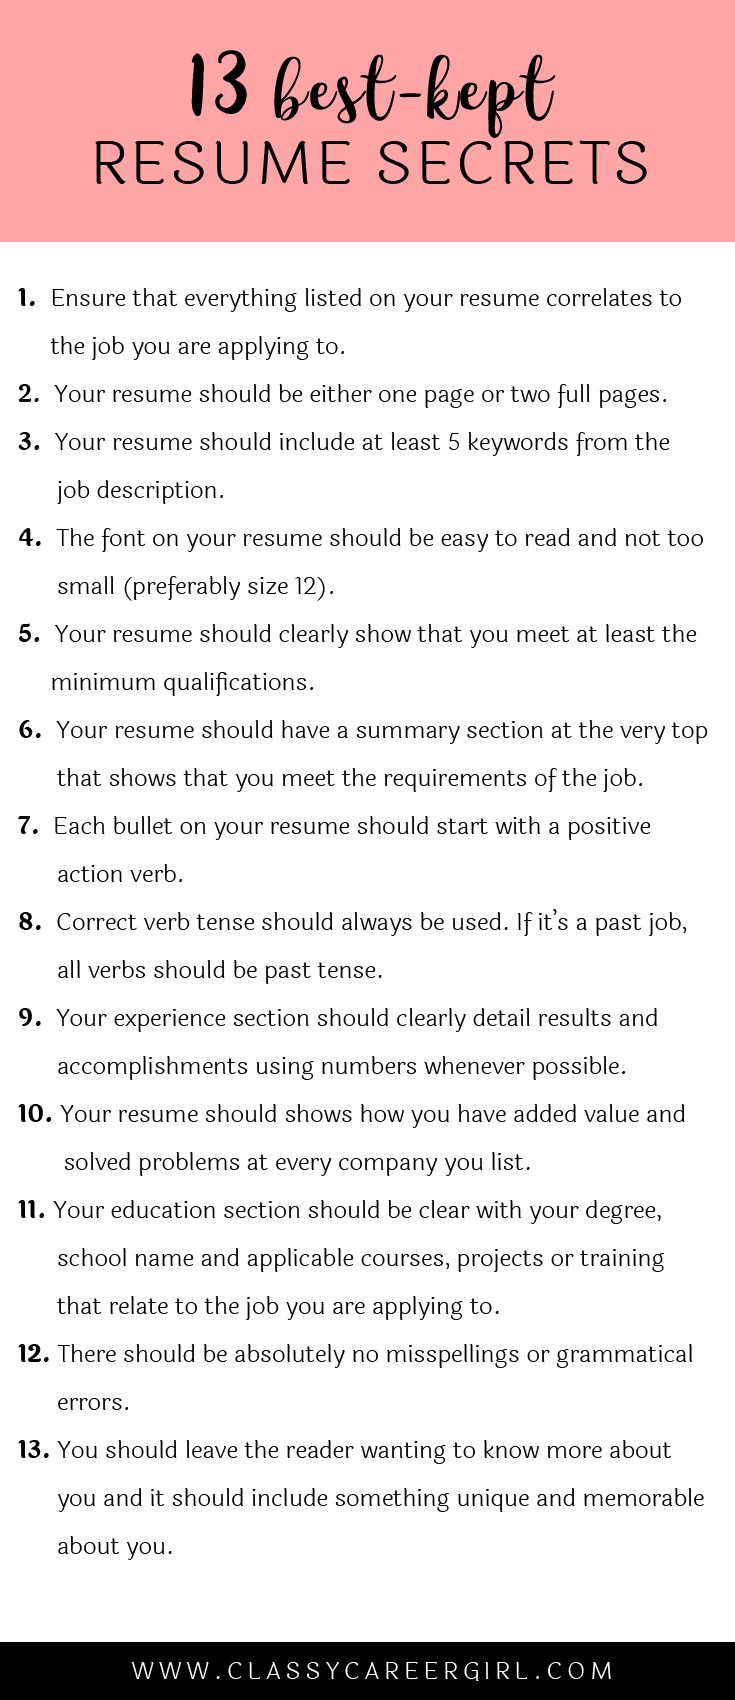 Opposenewapstandardsus  Remarkable  Ideas About Resume On Pinterest  Cv Format Resume Cv And  With Lovely Some Hiring Managers Will Toss Your Resume Out If You Dont Know These  With Adorable Csr Resume Also Resume Building Websites In Addition Security Analyst Resume And Store Manager Job Description Resume As Well As Animation Resume Additionally Copy And Paste Resume Templates From Pinterestcom With Opposenewapstandardsus  Lovely  Ideas About Resume On Pinterest  Cv Format Resume Cv And  With Adorable Some Hiring Managers Will Toss Your Resume Out If You Dont Know These  And Remarkable Csr Resume Also Resume Building Websites In Addition Security Analyst Resume From Pinterestcom